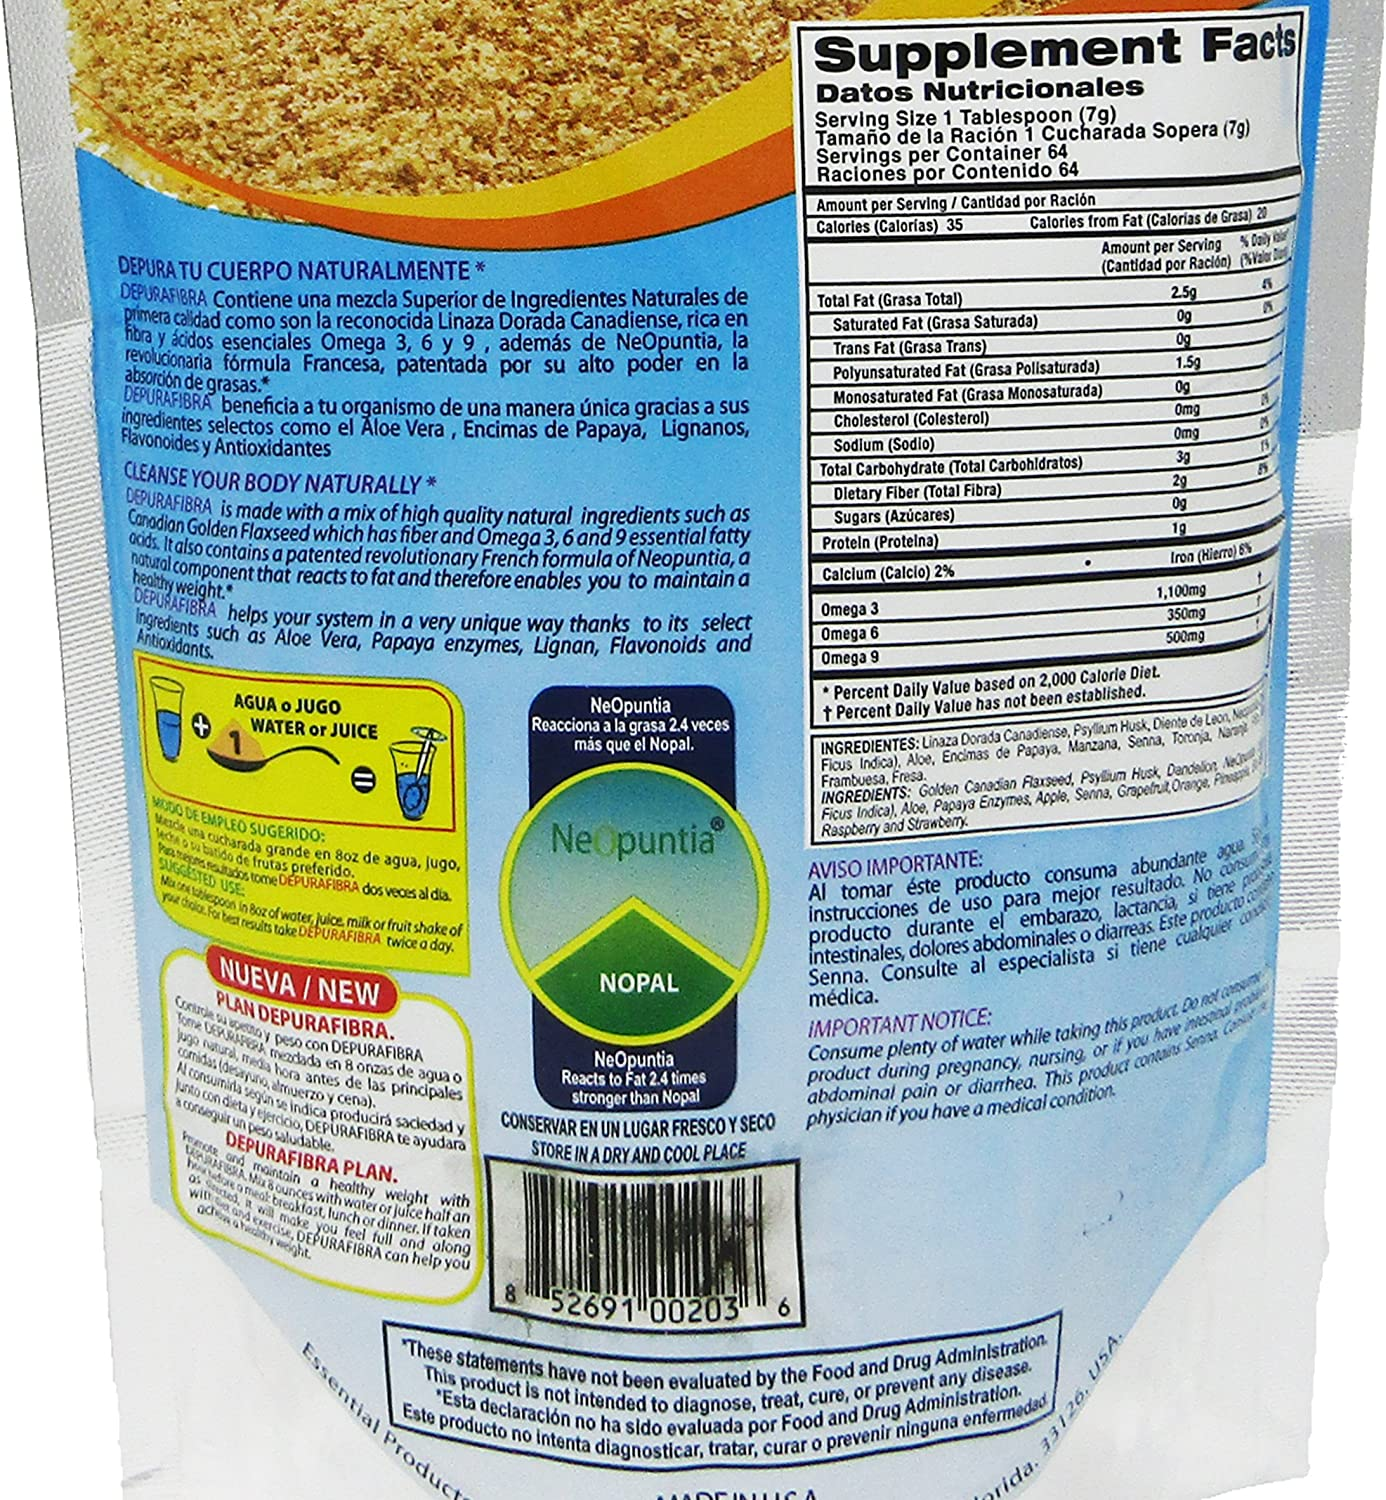 Amazon.com: depurafibra Natural Suplemento dietético 16 oz ...